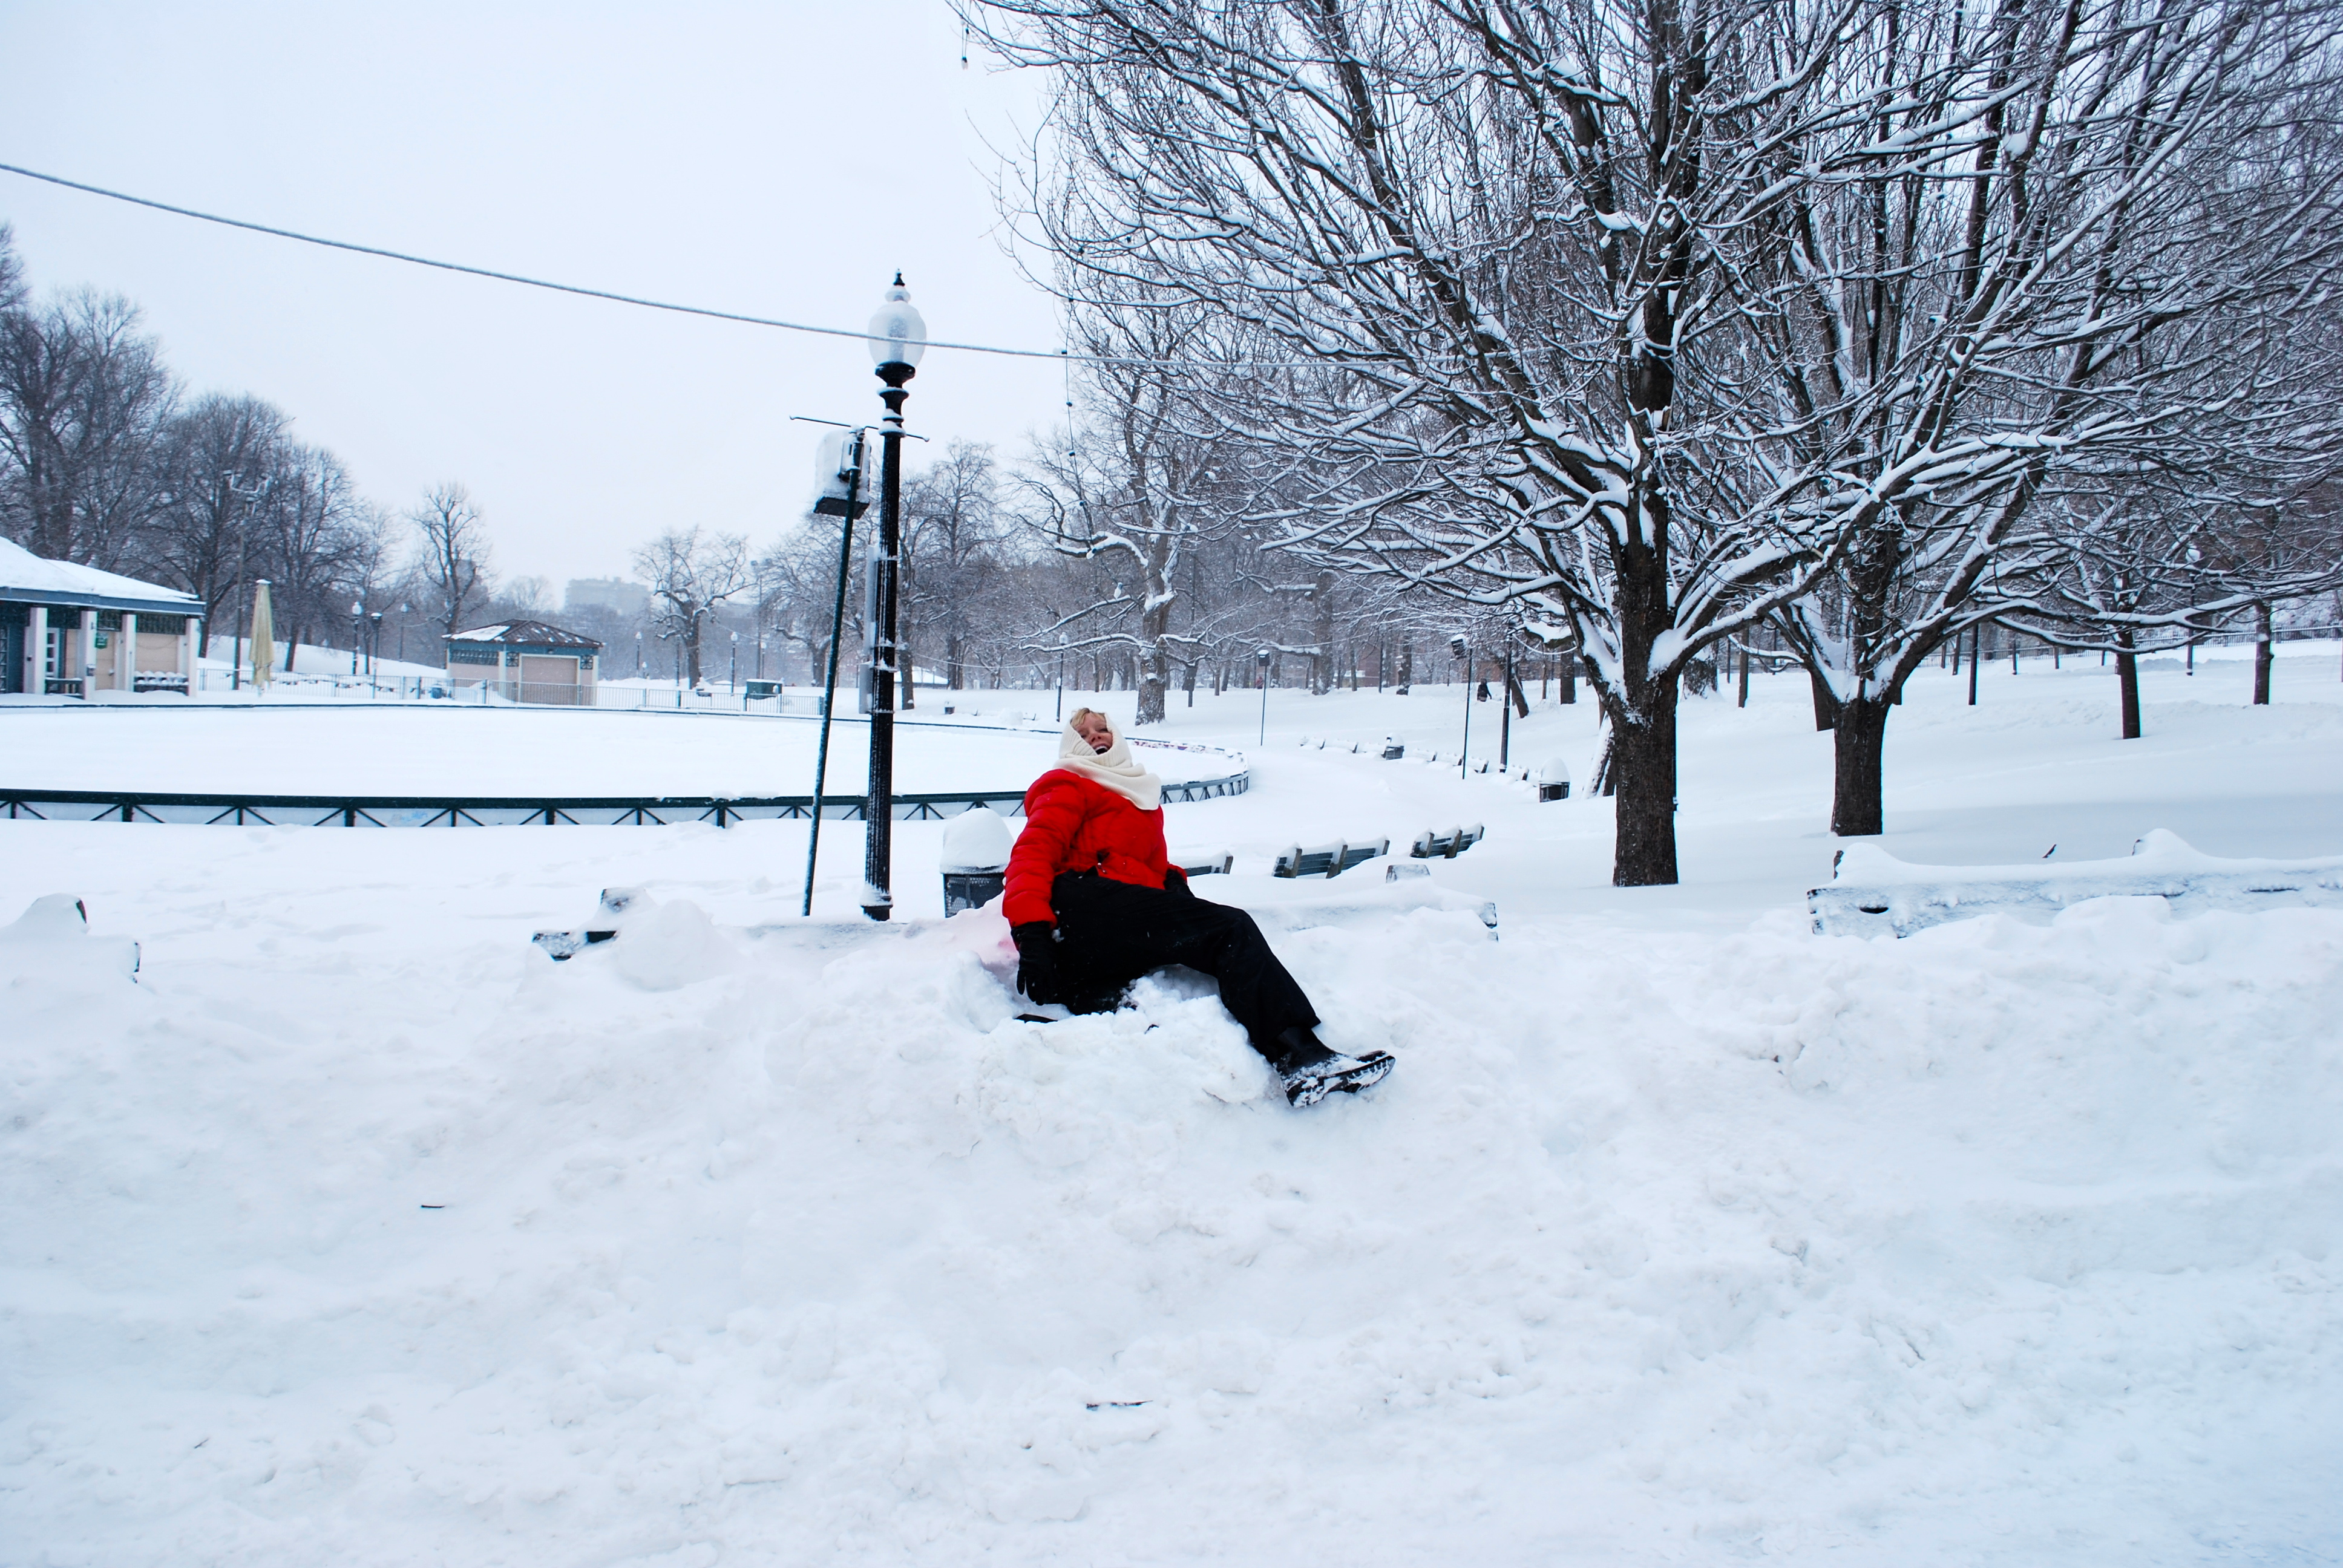 Blonde attempting to sit on park bench covered in snow